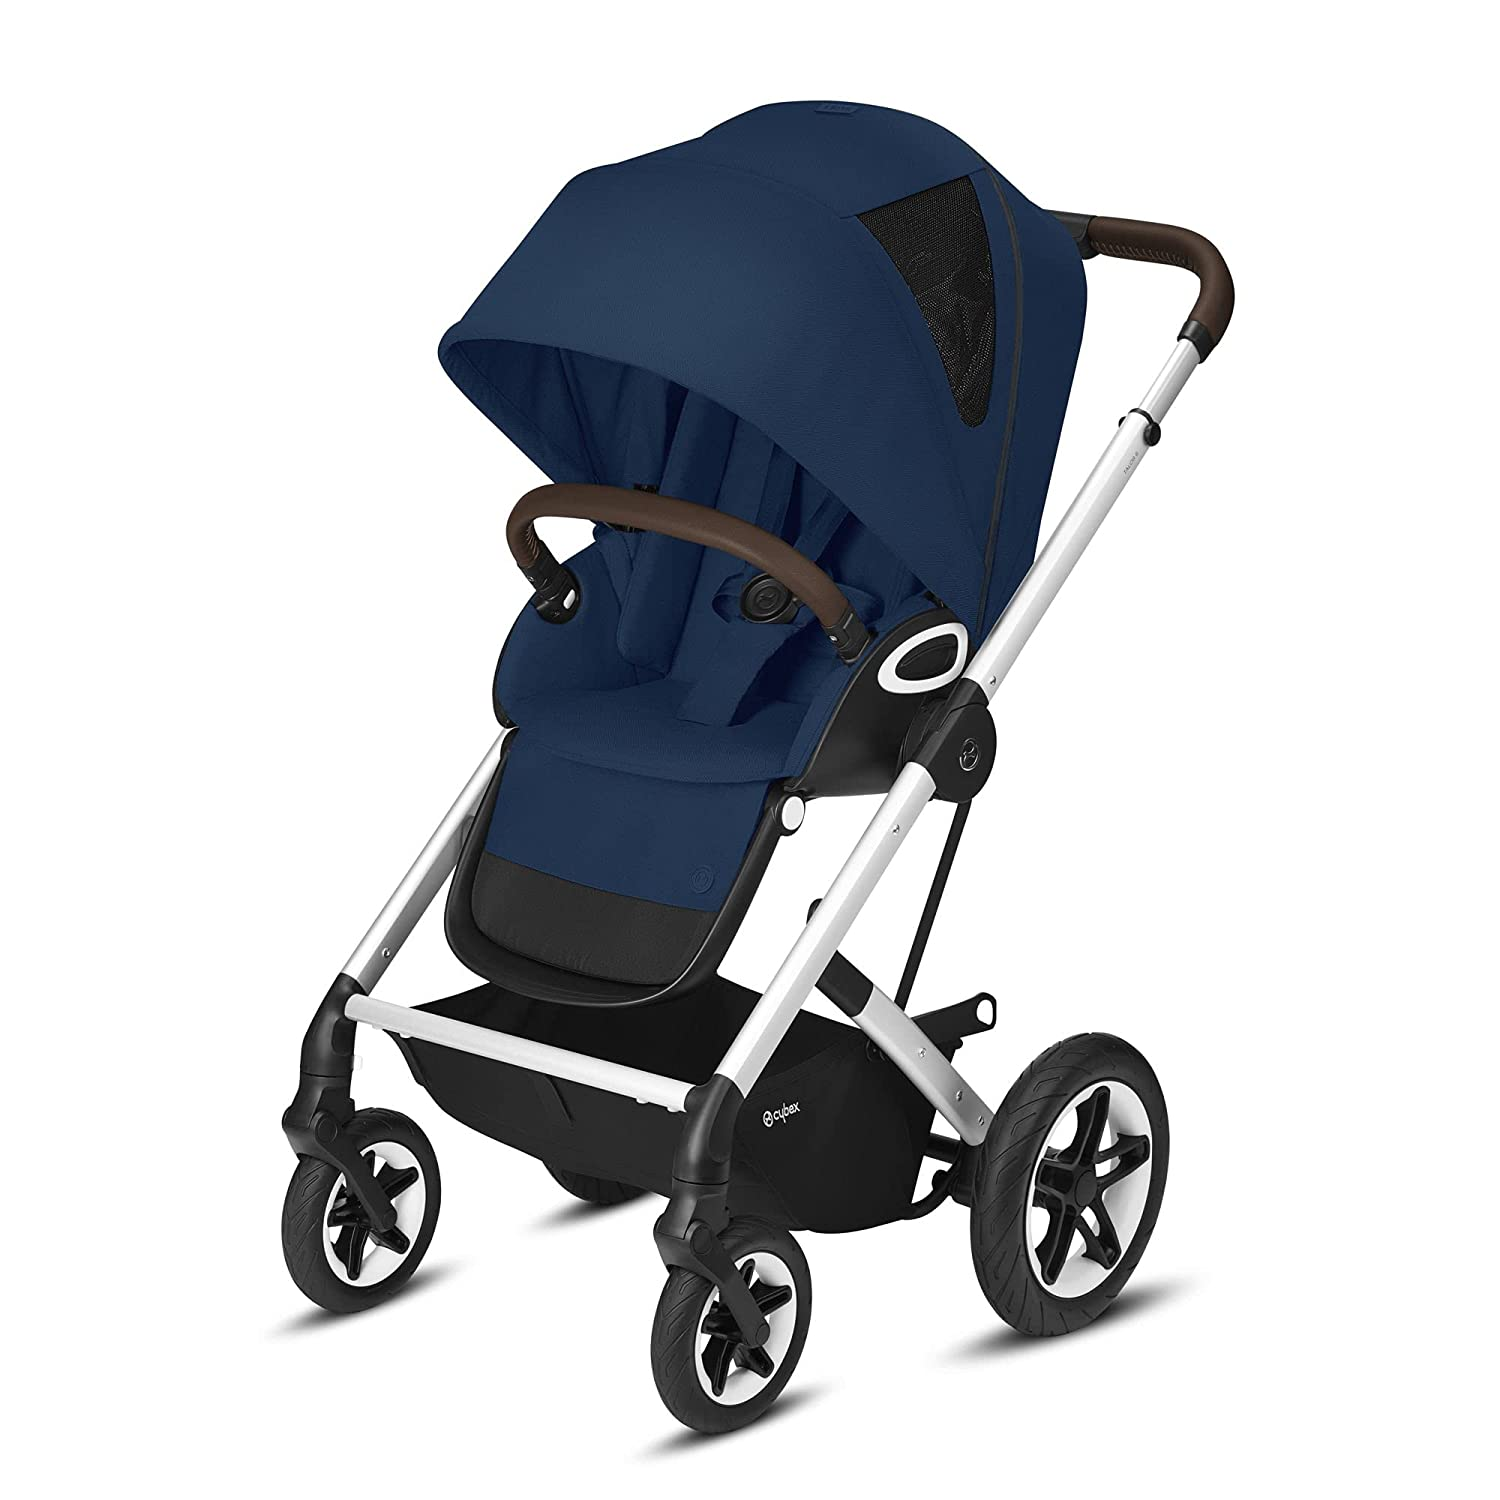 Cybex Talos S Lux Stroller, AllTerrain Wheels, FrontFacing or ParentFacing Seat Positions, OneHand Fold, Multiposition Recline, Navy Blue